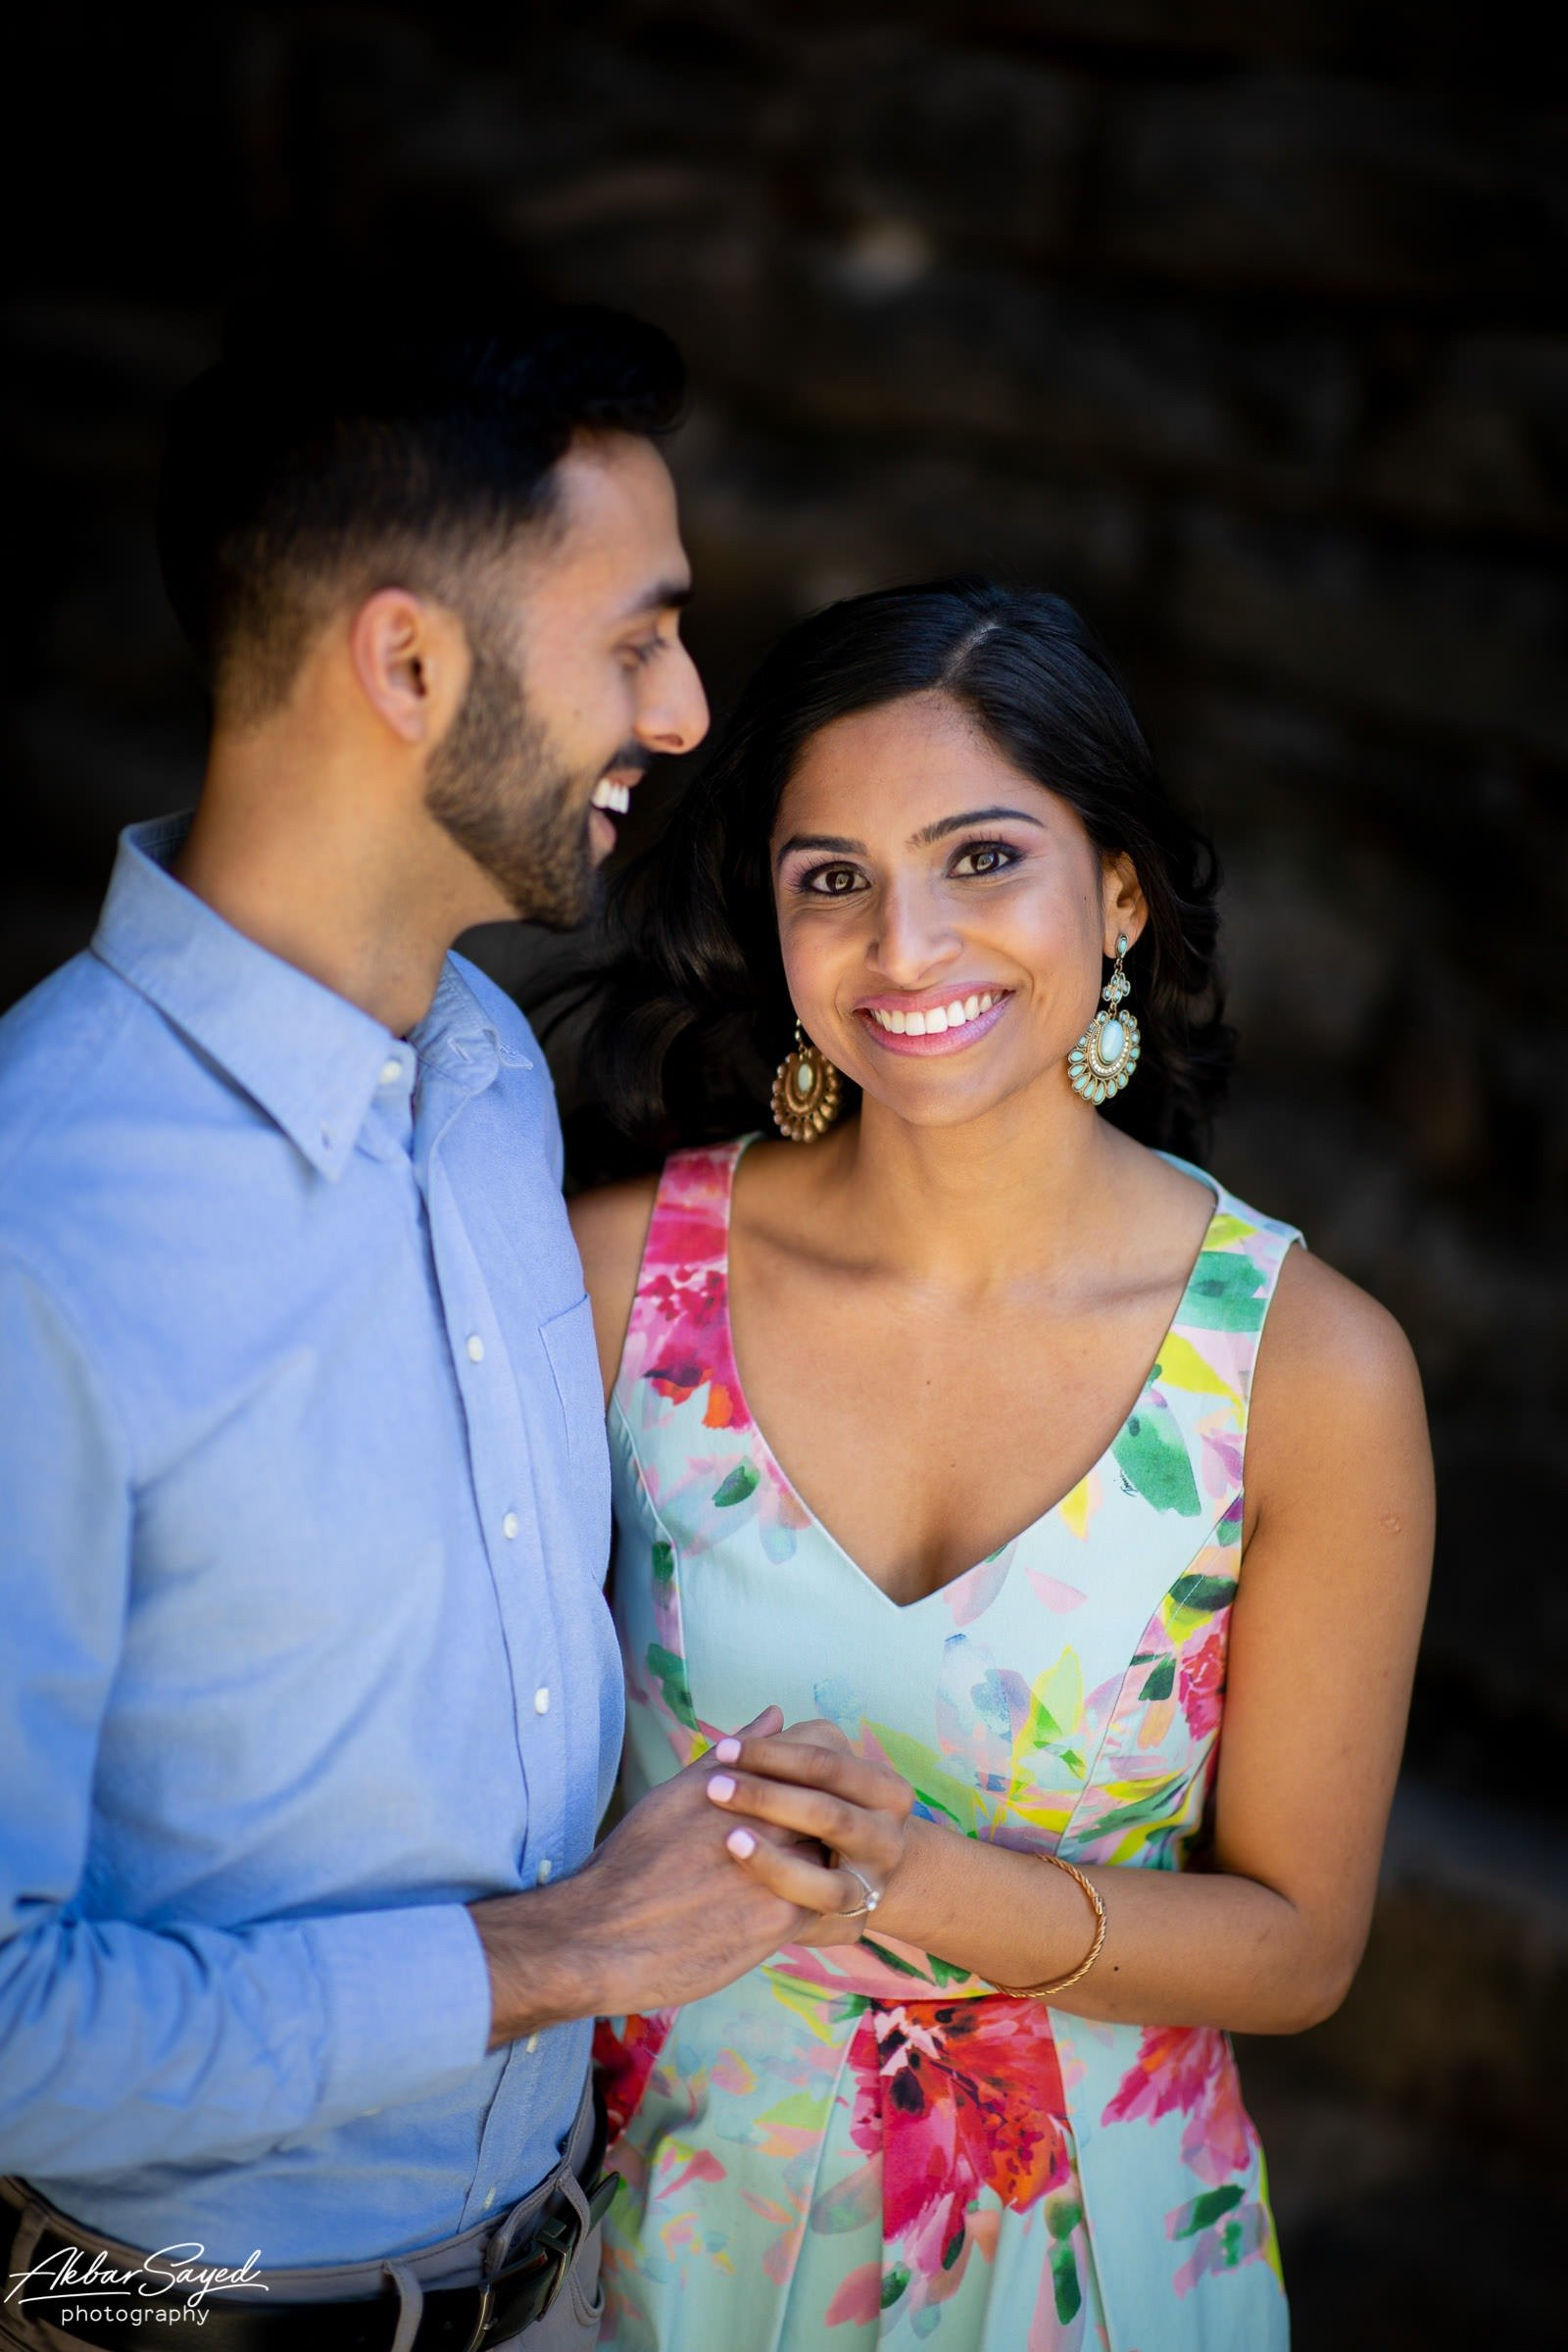 Old Town Alexandria engagement photo with an engaged Indian - American couple.